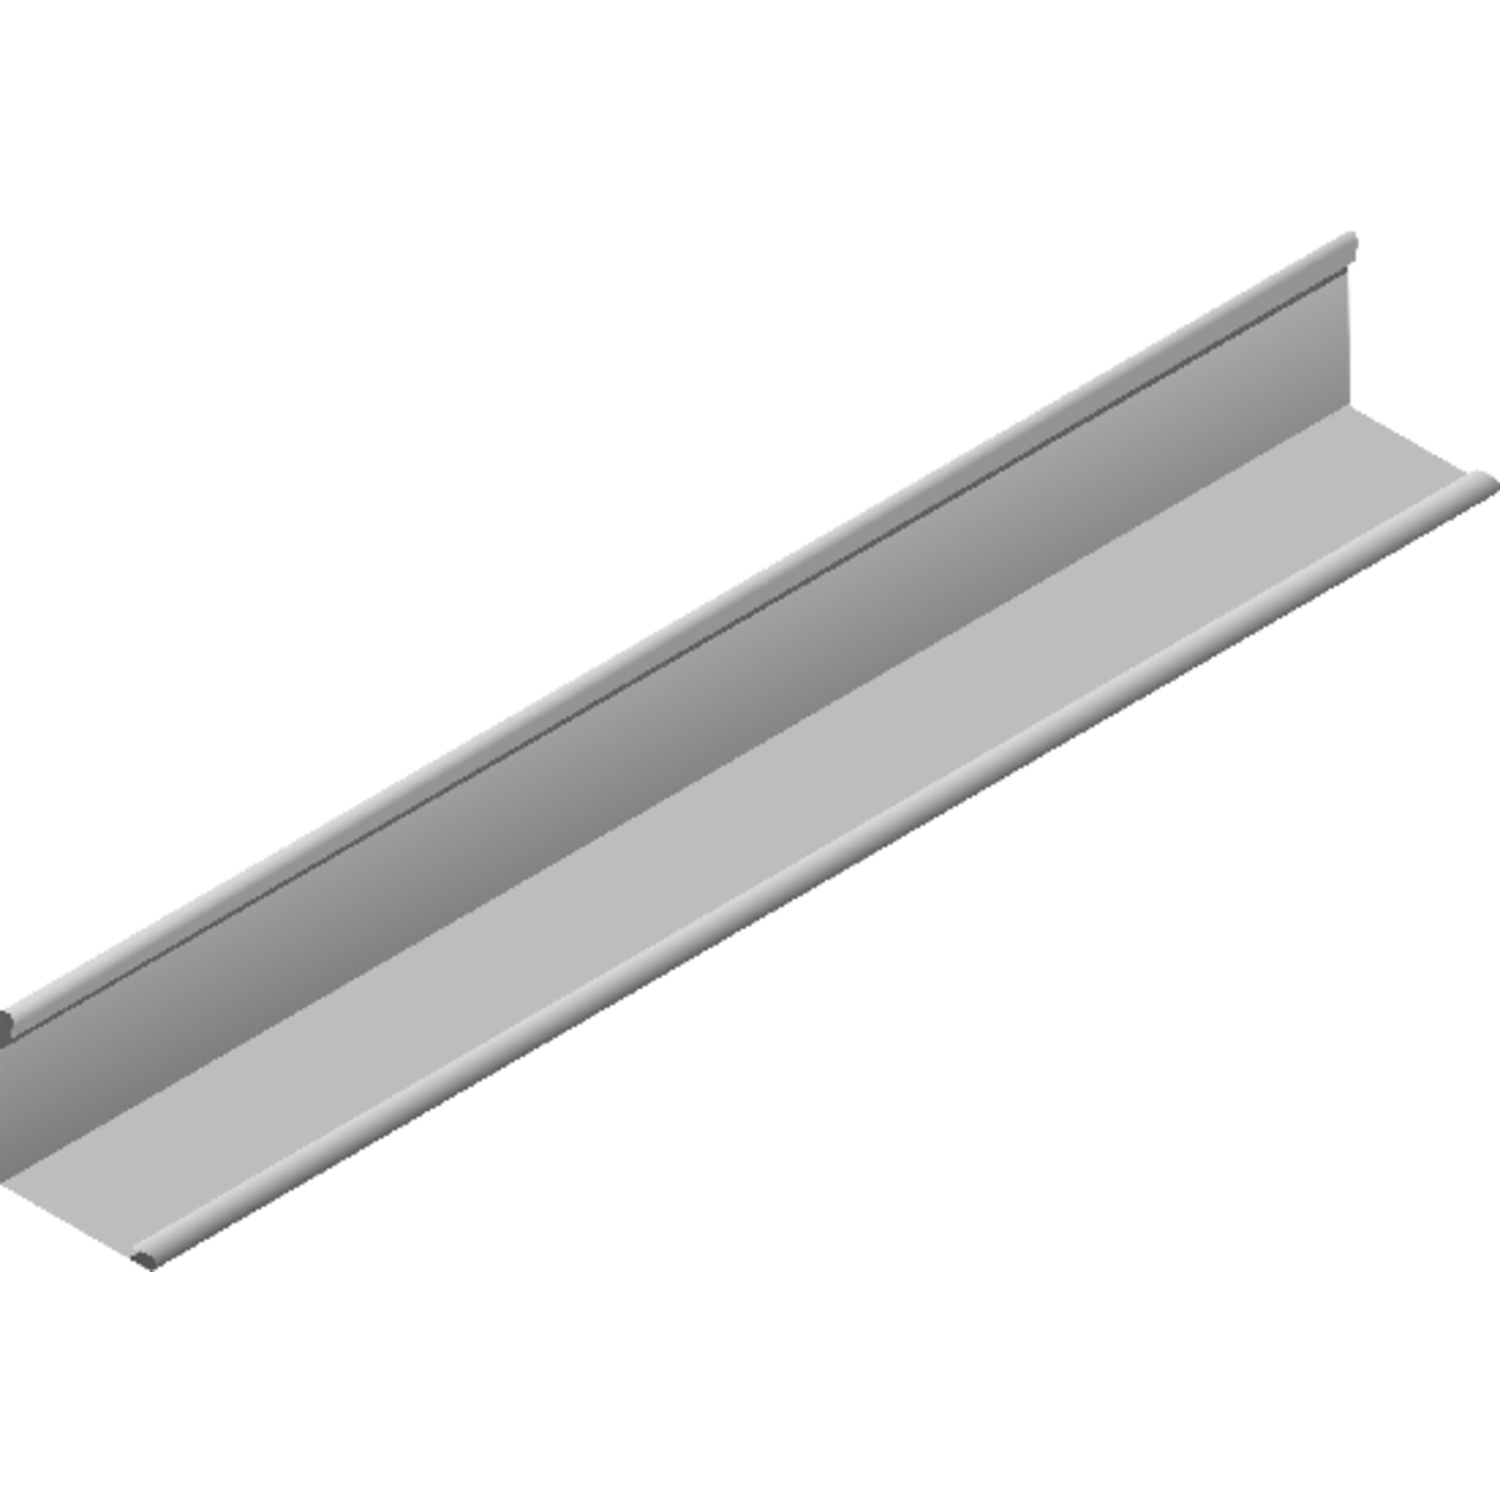 USG Donn Brand  SM7  0.875 in. W x 0.875 in. L Galvanized Steel  Wall Mounting